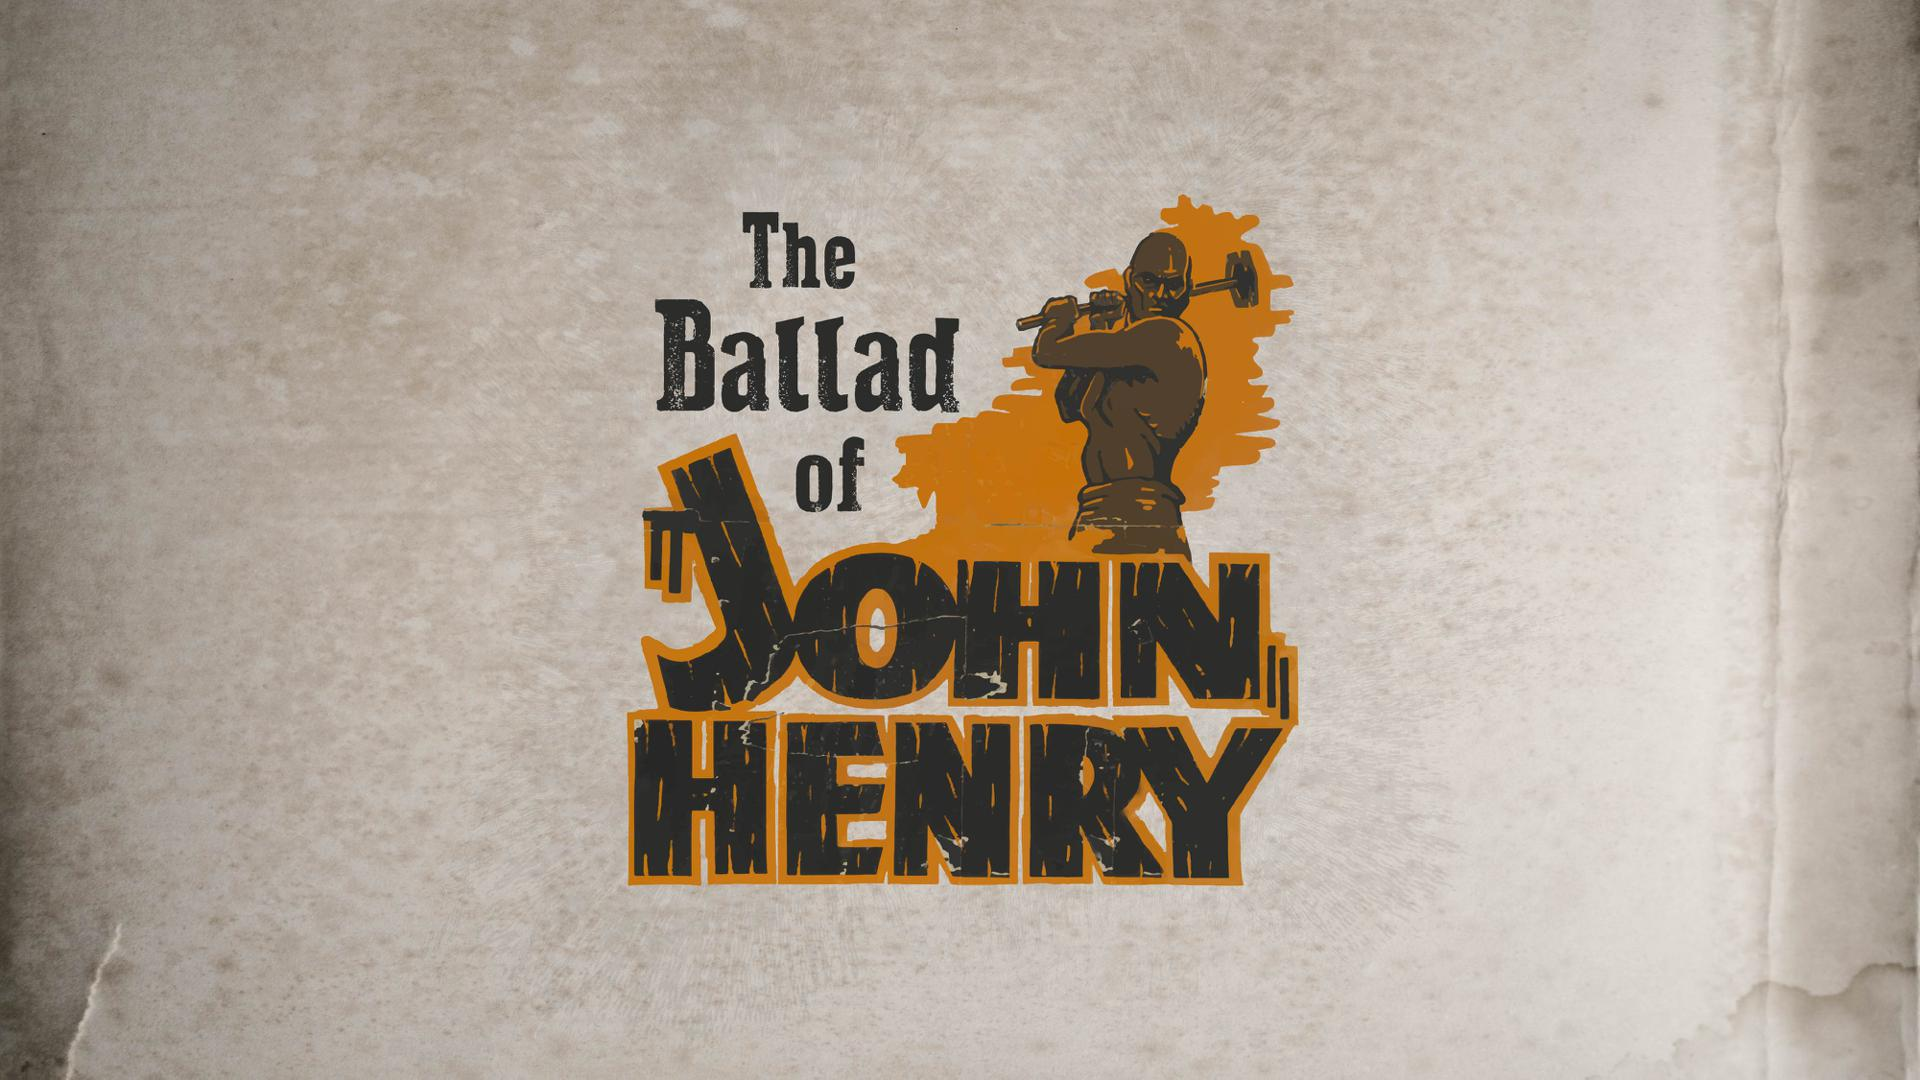 THE BALLAD OF JOHN HENRY     (To play film click circle button to the right. To add to watchlist, click + button below it)